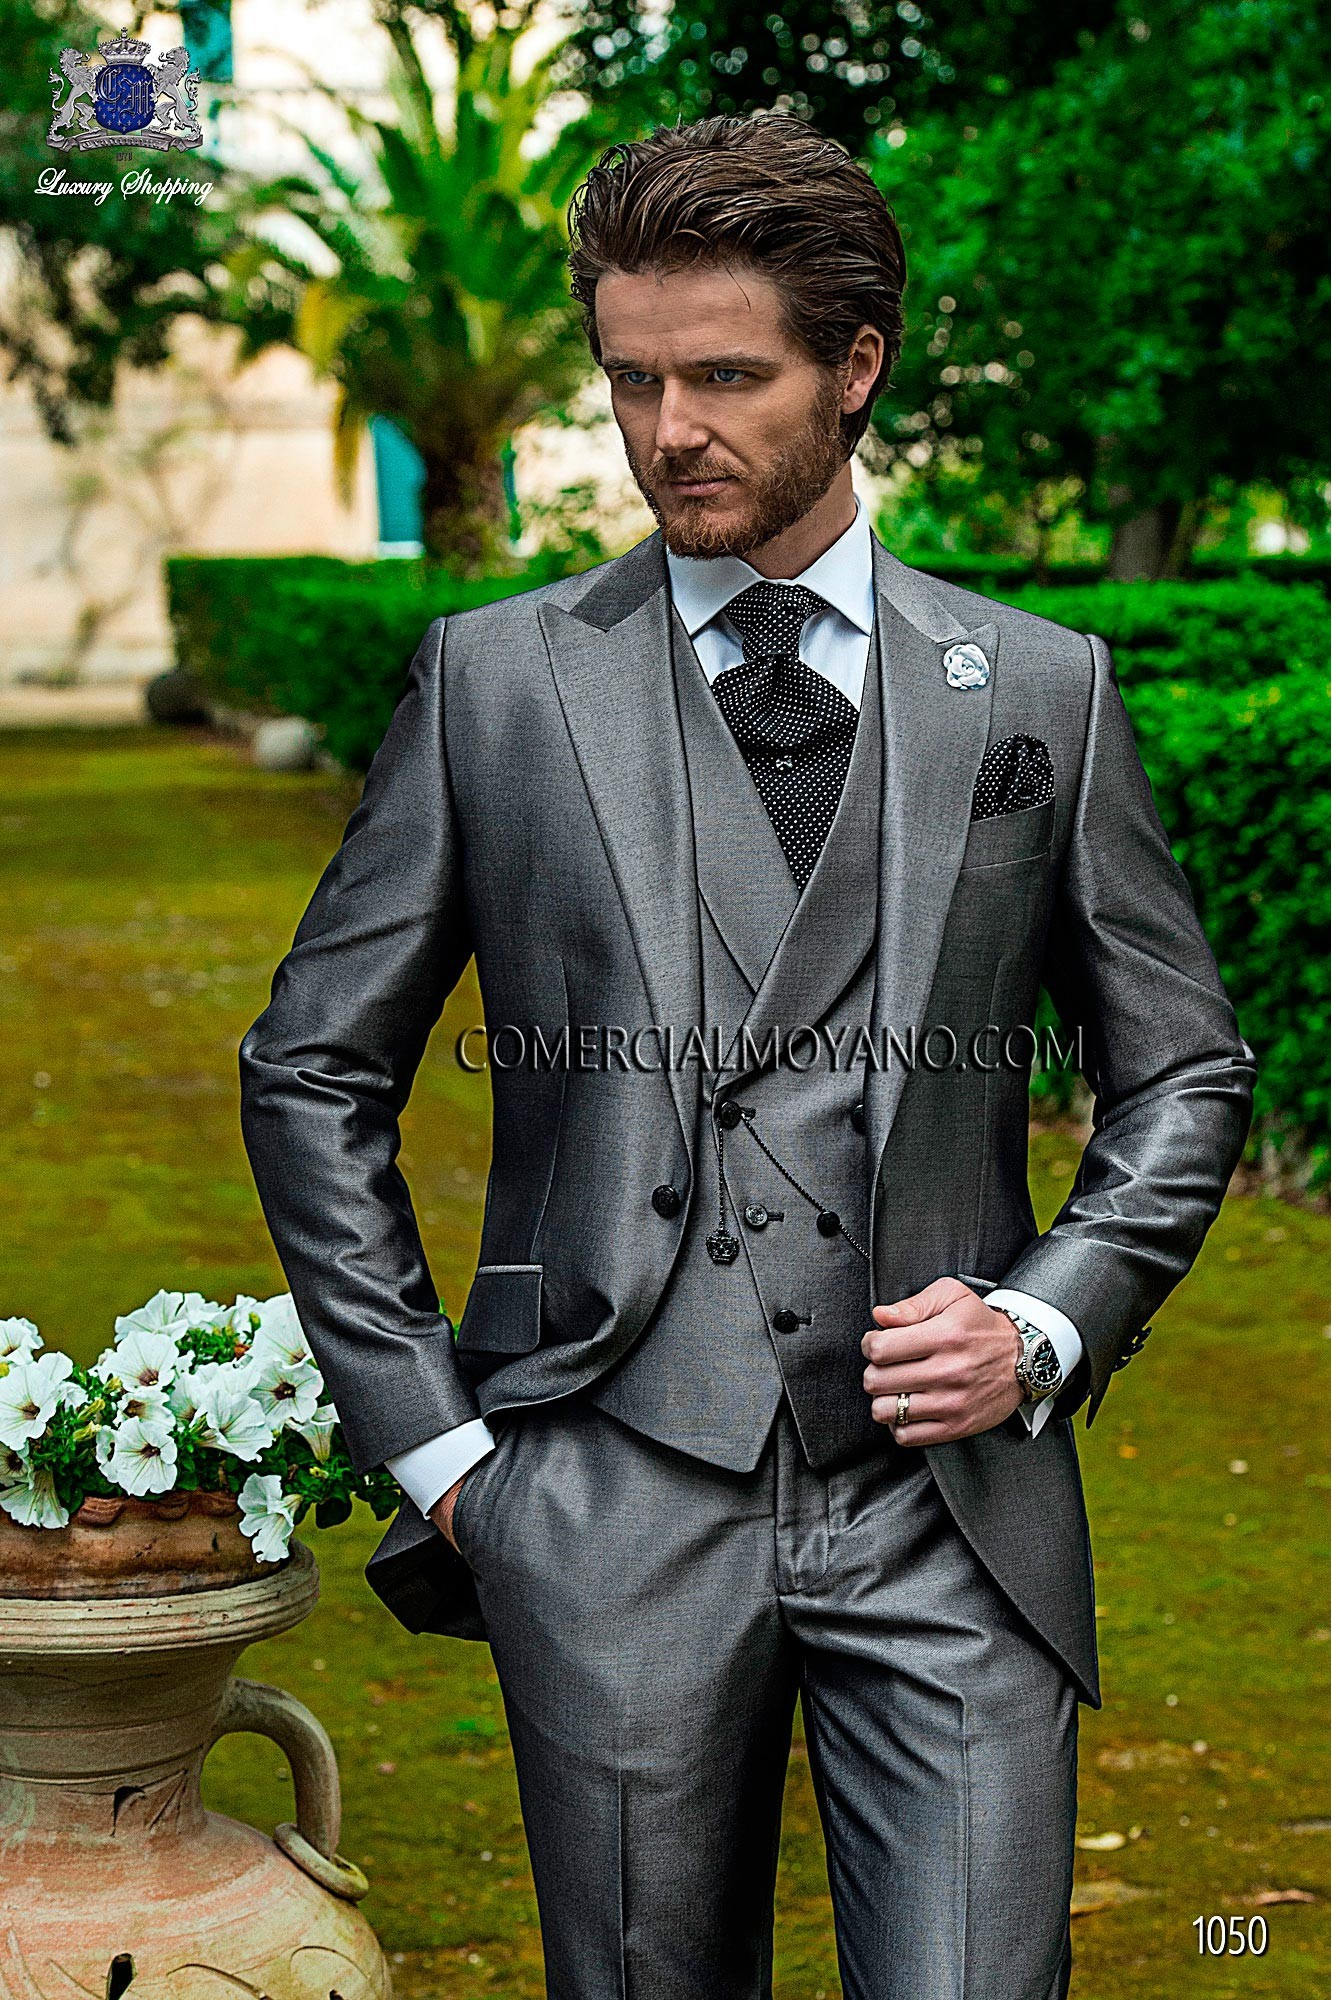 Fashion pearl gray men wedding suit model 1050 Ottavio Nuccio Gala